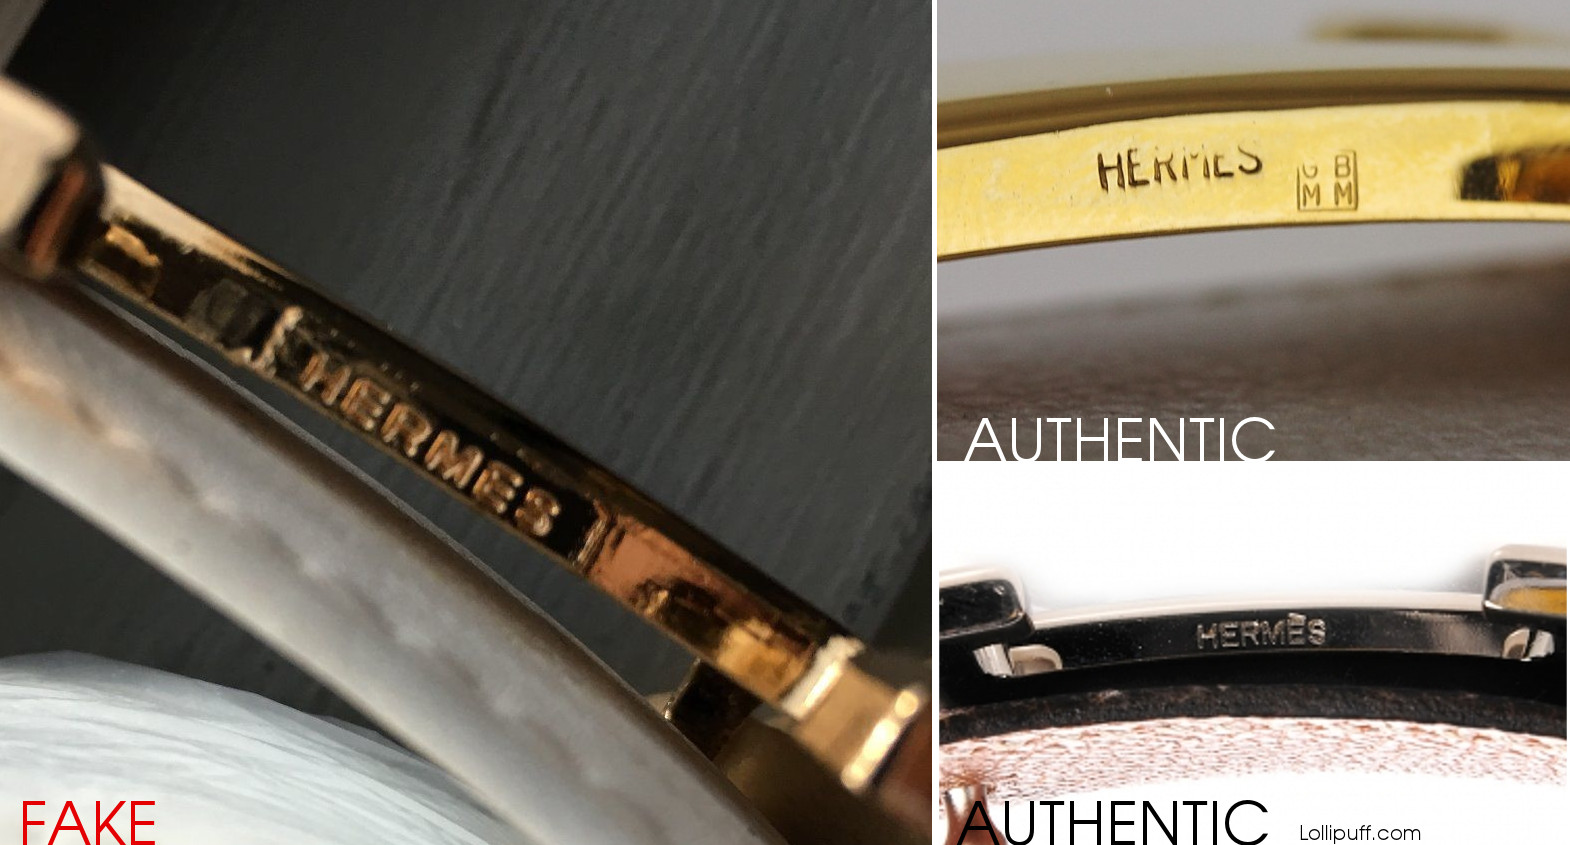 Hermes stamp imprint hallmark on metal buckle